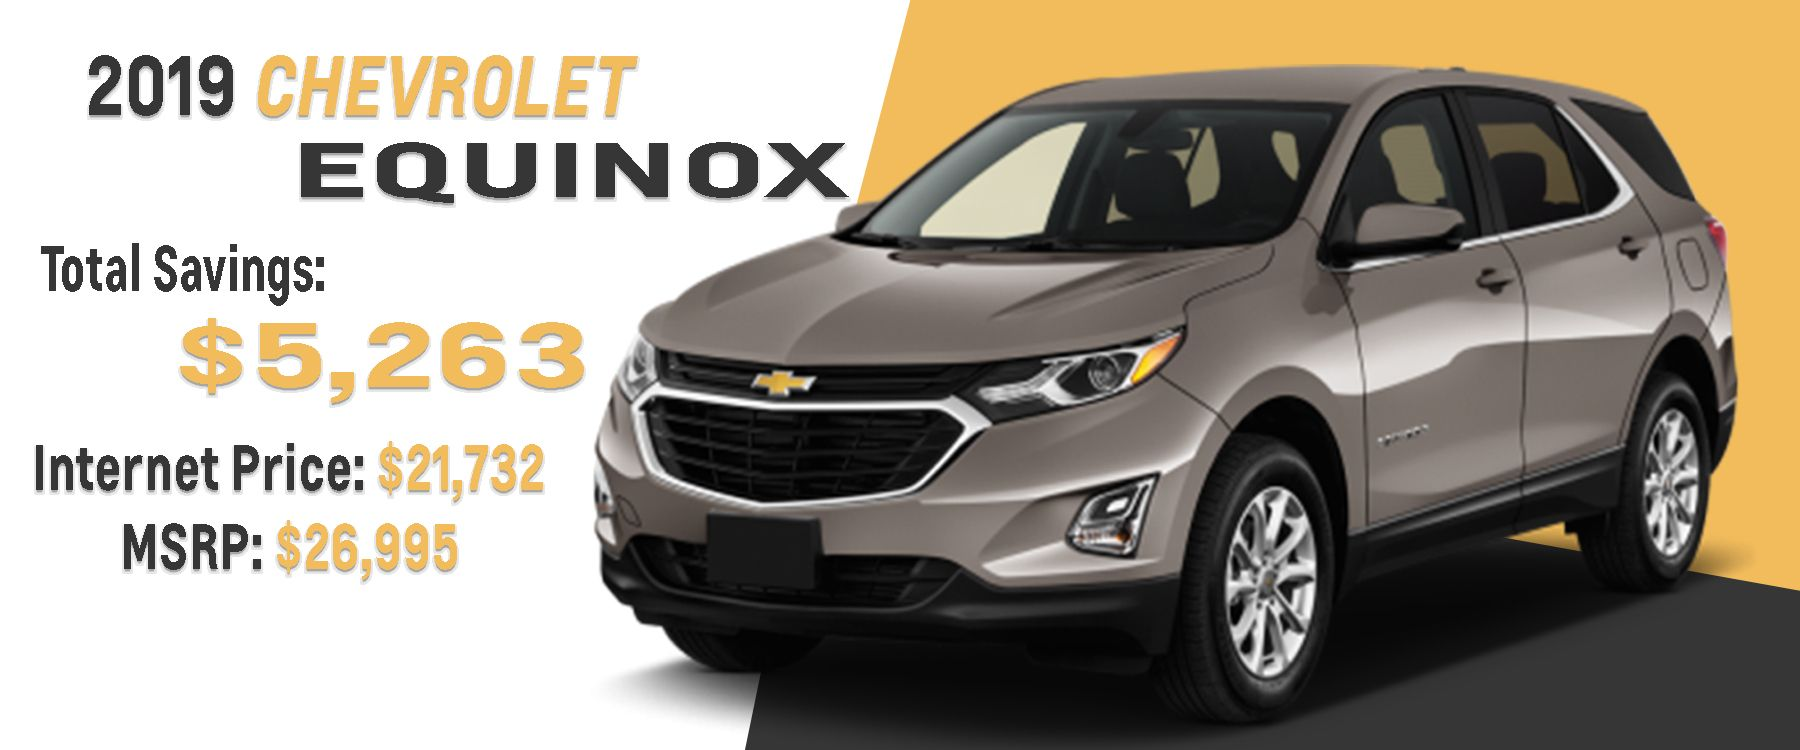 New Chevy Equinox For Sale In Homewood Chevy Equinox New Chevy Equinox Equinox